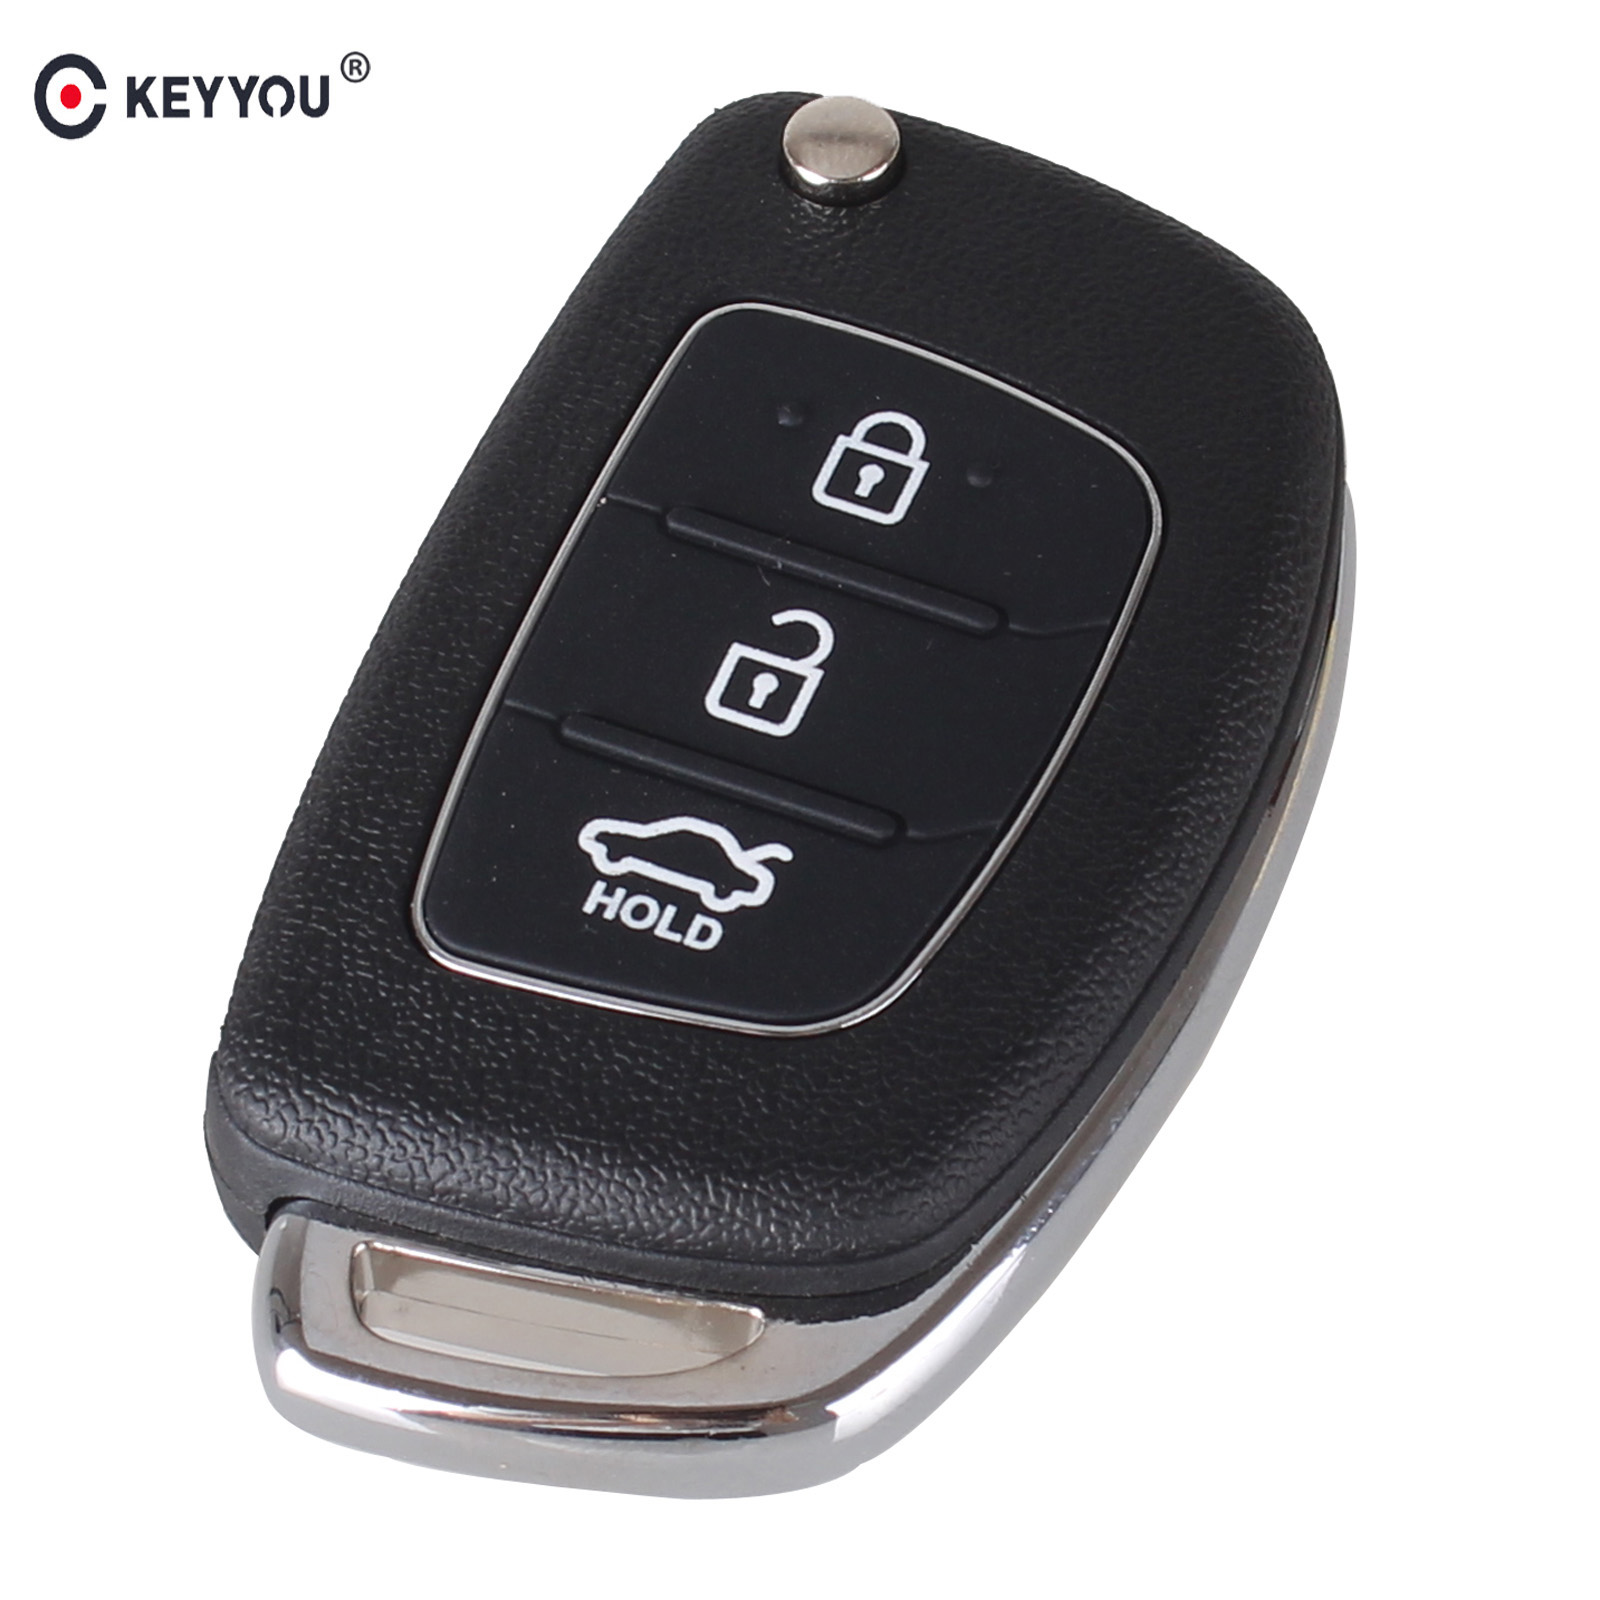 KEYYOU 3 Buttons Flip Folding Remote Key Shell Fob Key Case For Hyundai Mistra ix35 ix45 Series 2 Verna maizhi 3 button flip folding car key shell for hyundai avante i30 ix35 kia k2 k5 sorento sportage key cover case styling